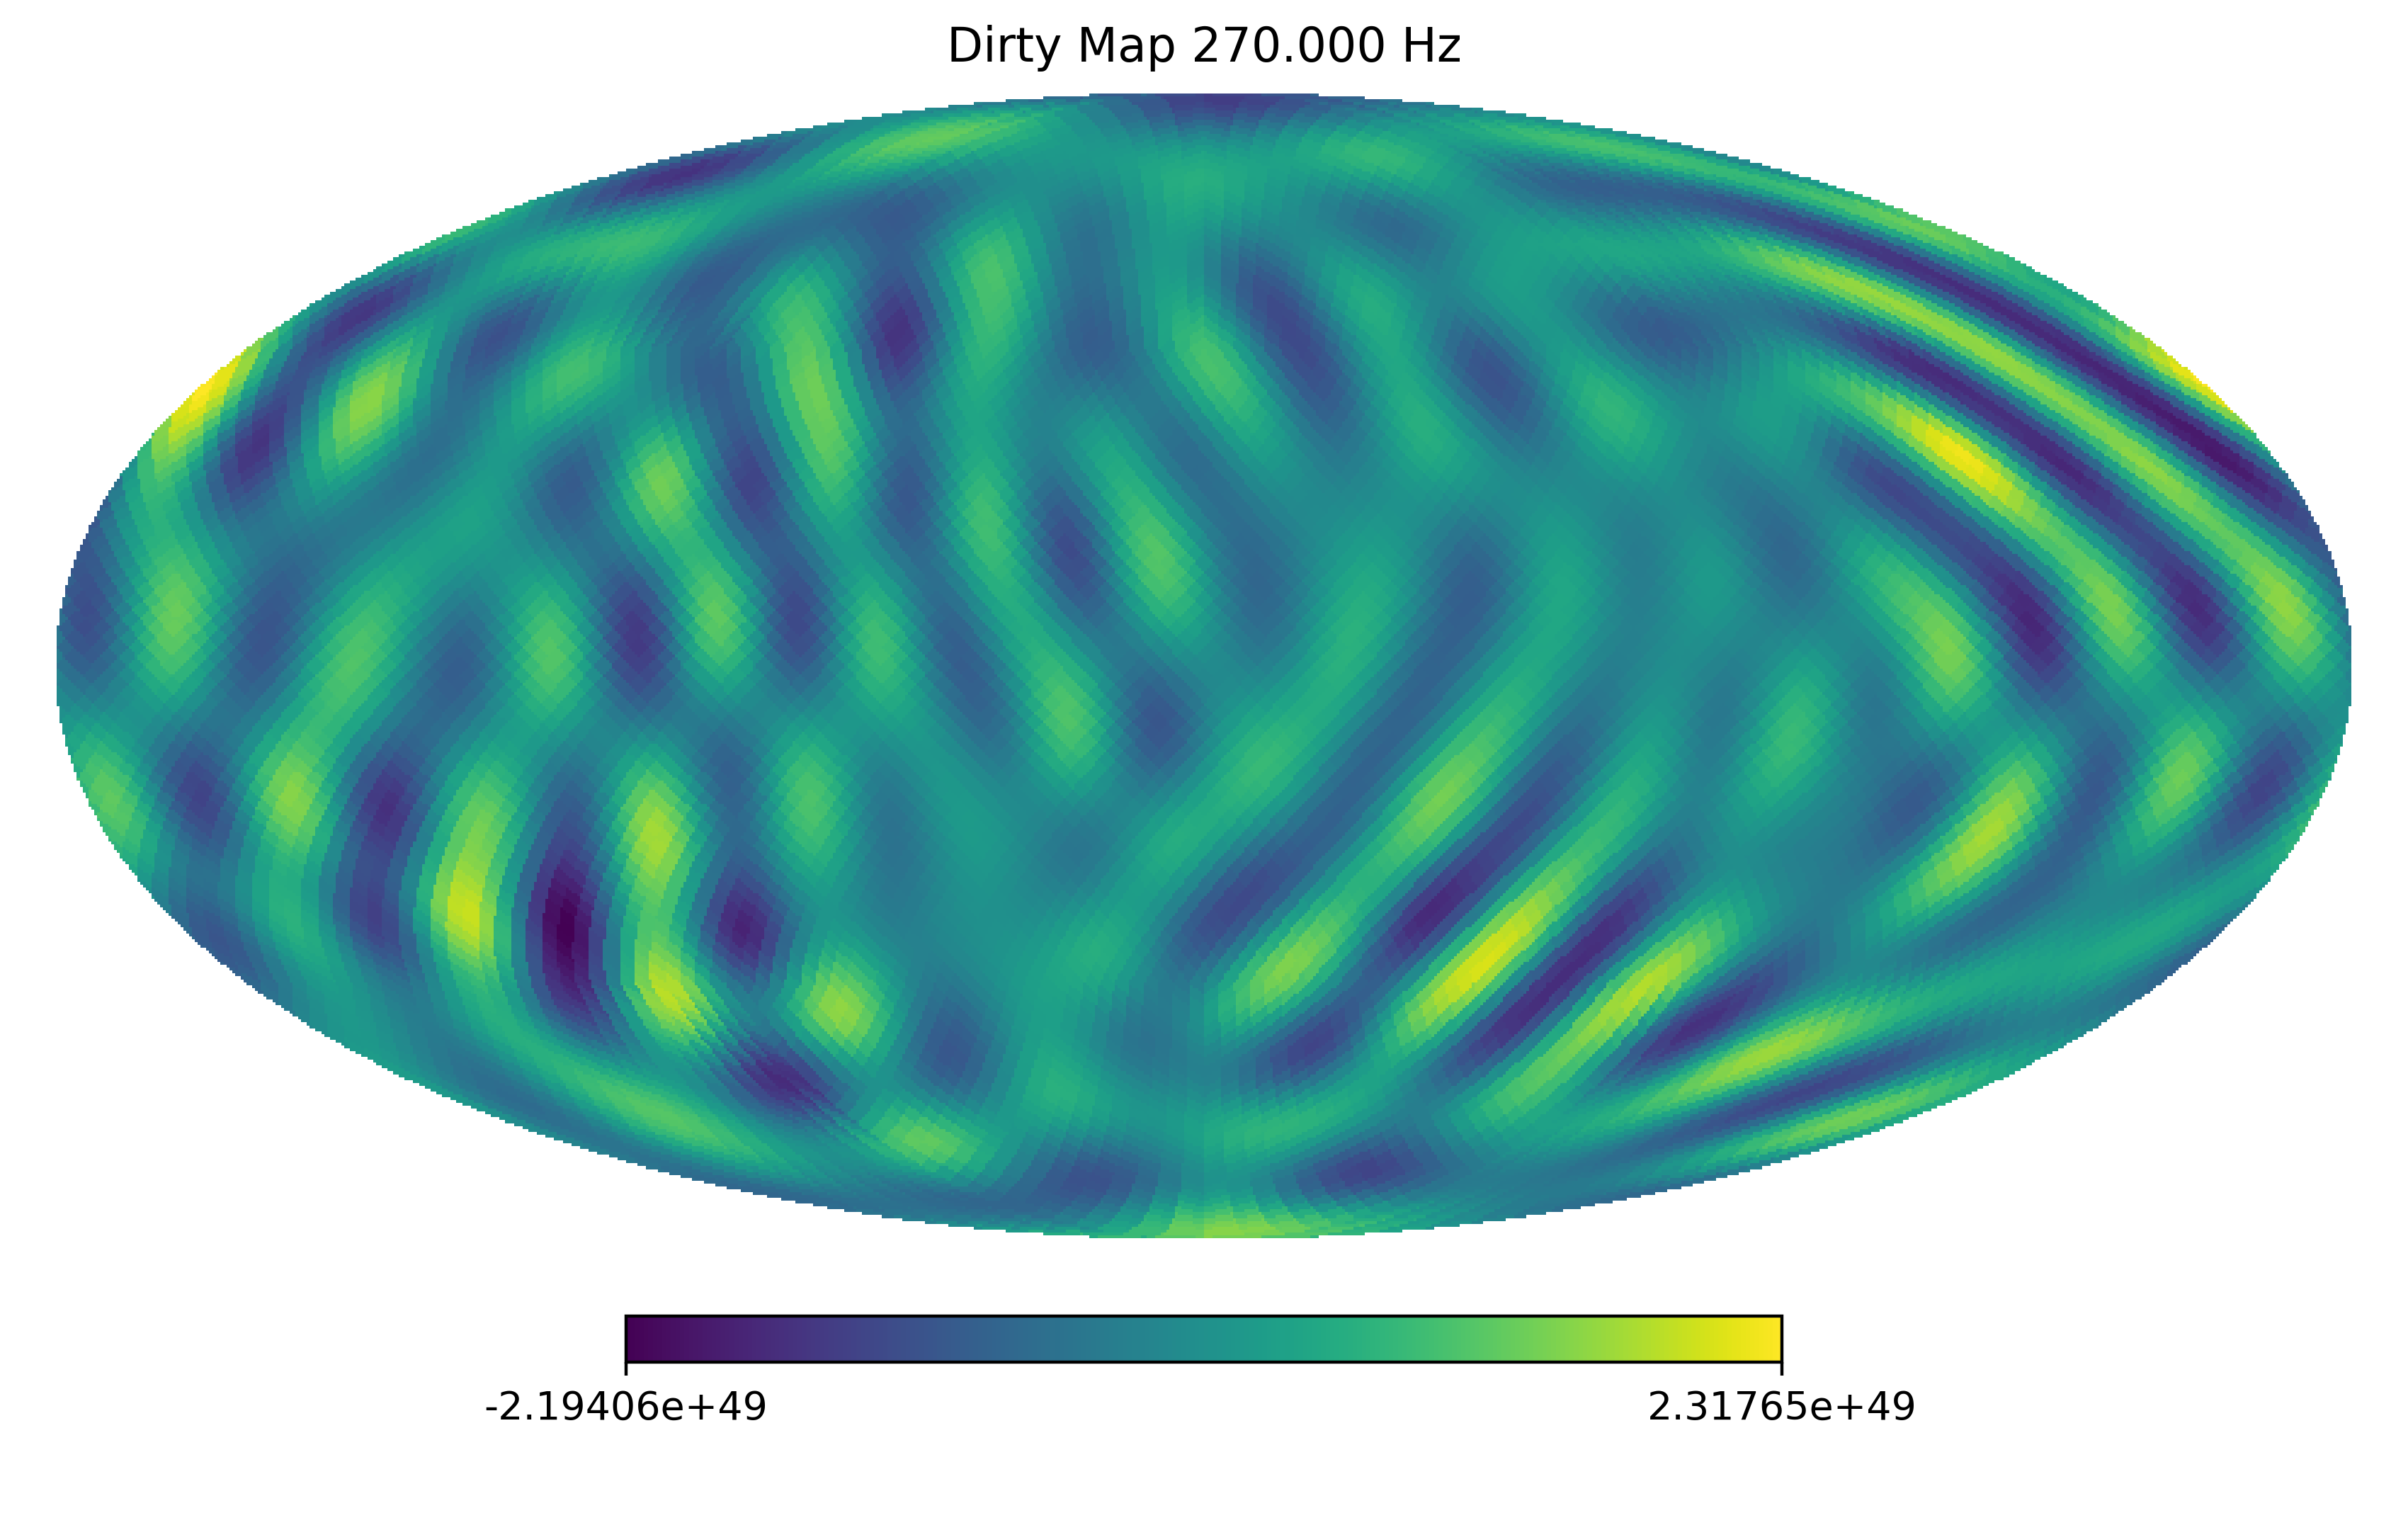 Sample narrowband dirty maps from simulated data at four different frequencies 70, 170, 270 and 470 Hz are shown. The simulated data has the same statistical properties as O1 data. In these plots it can be seen that the spot sizes get smaller as the frequency goes up due to the diffraction limit.